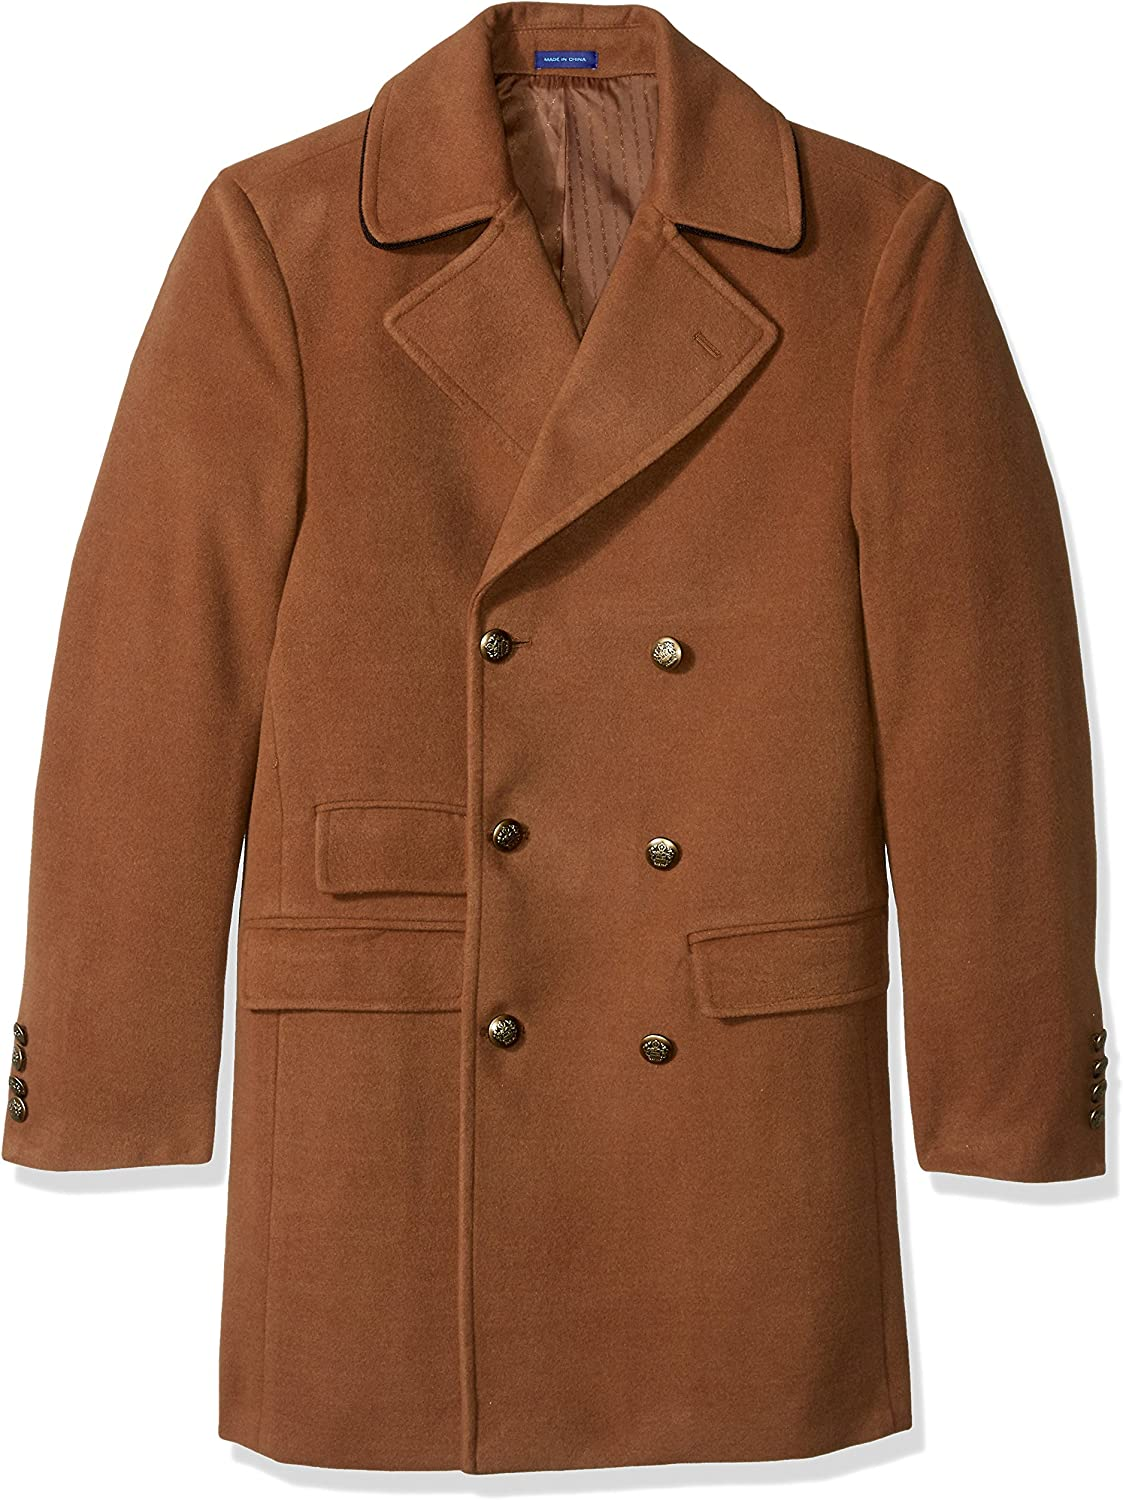 STACY ADAMS Men's Big and Tall Big & Tall Tomy Double Breasted 36 Inch Topcoat